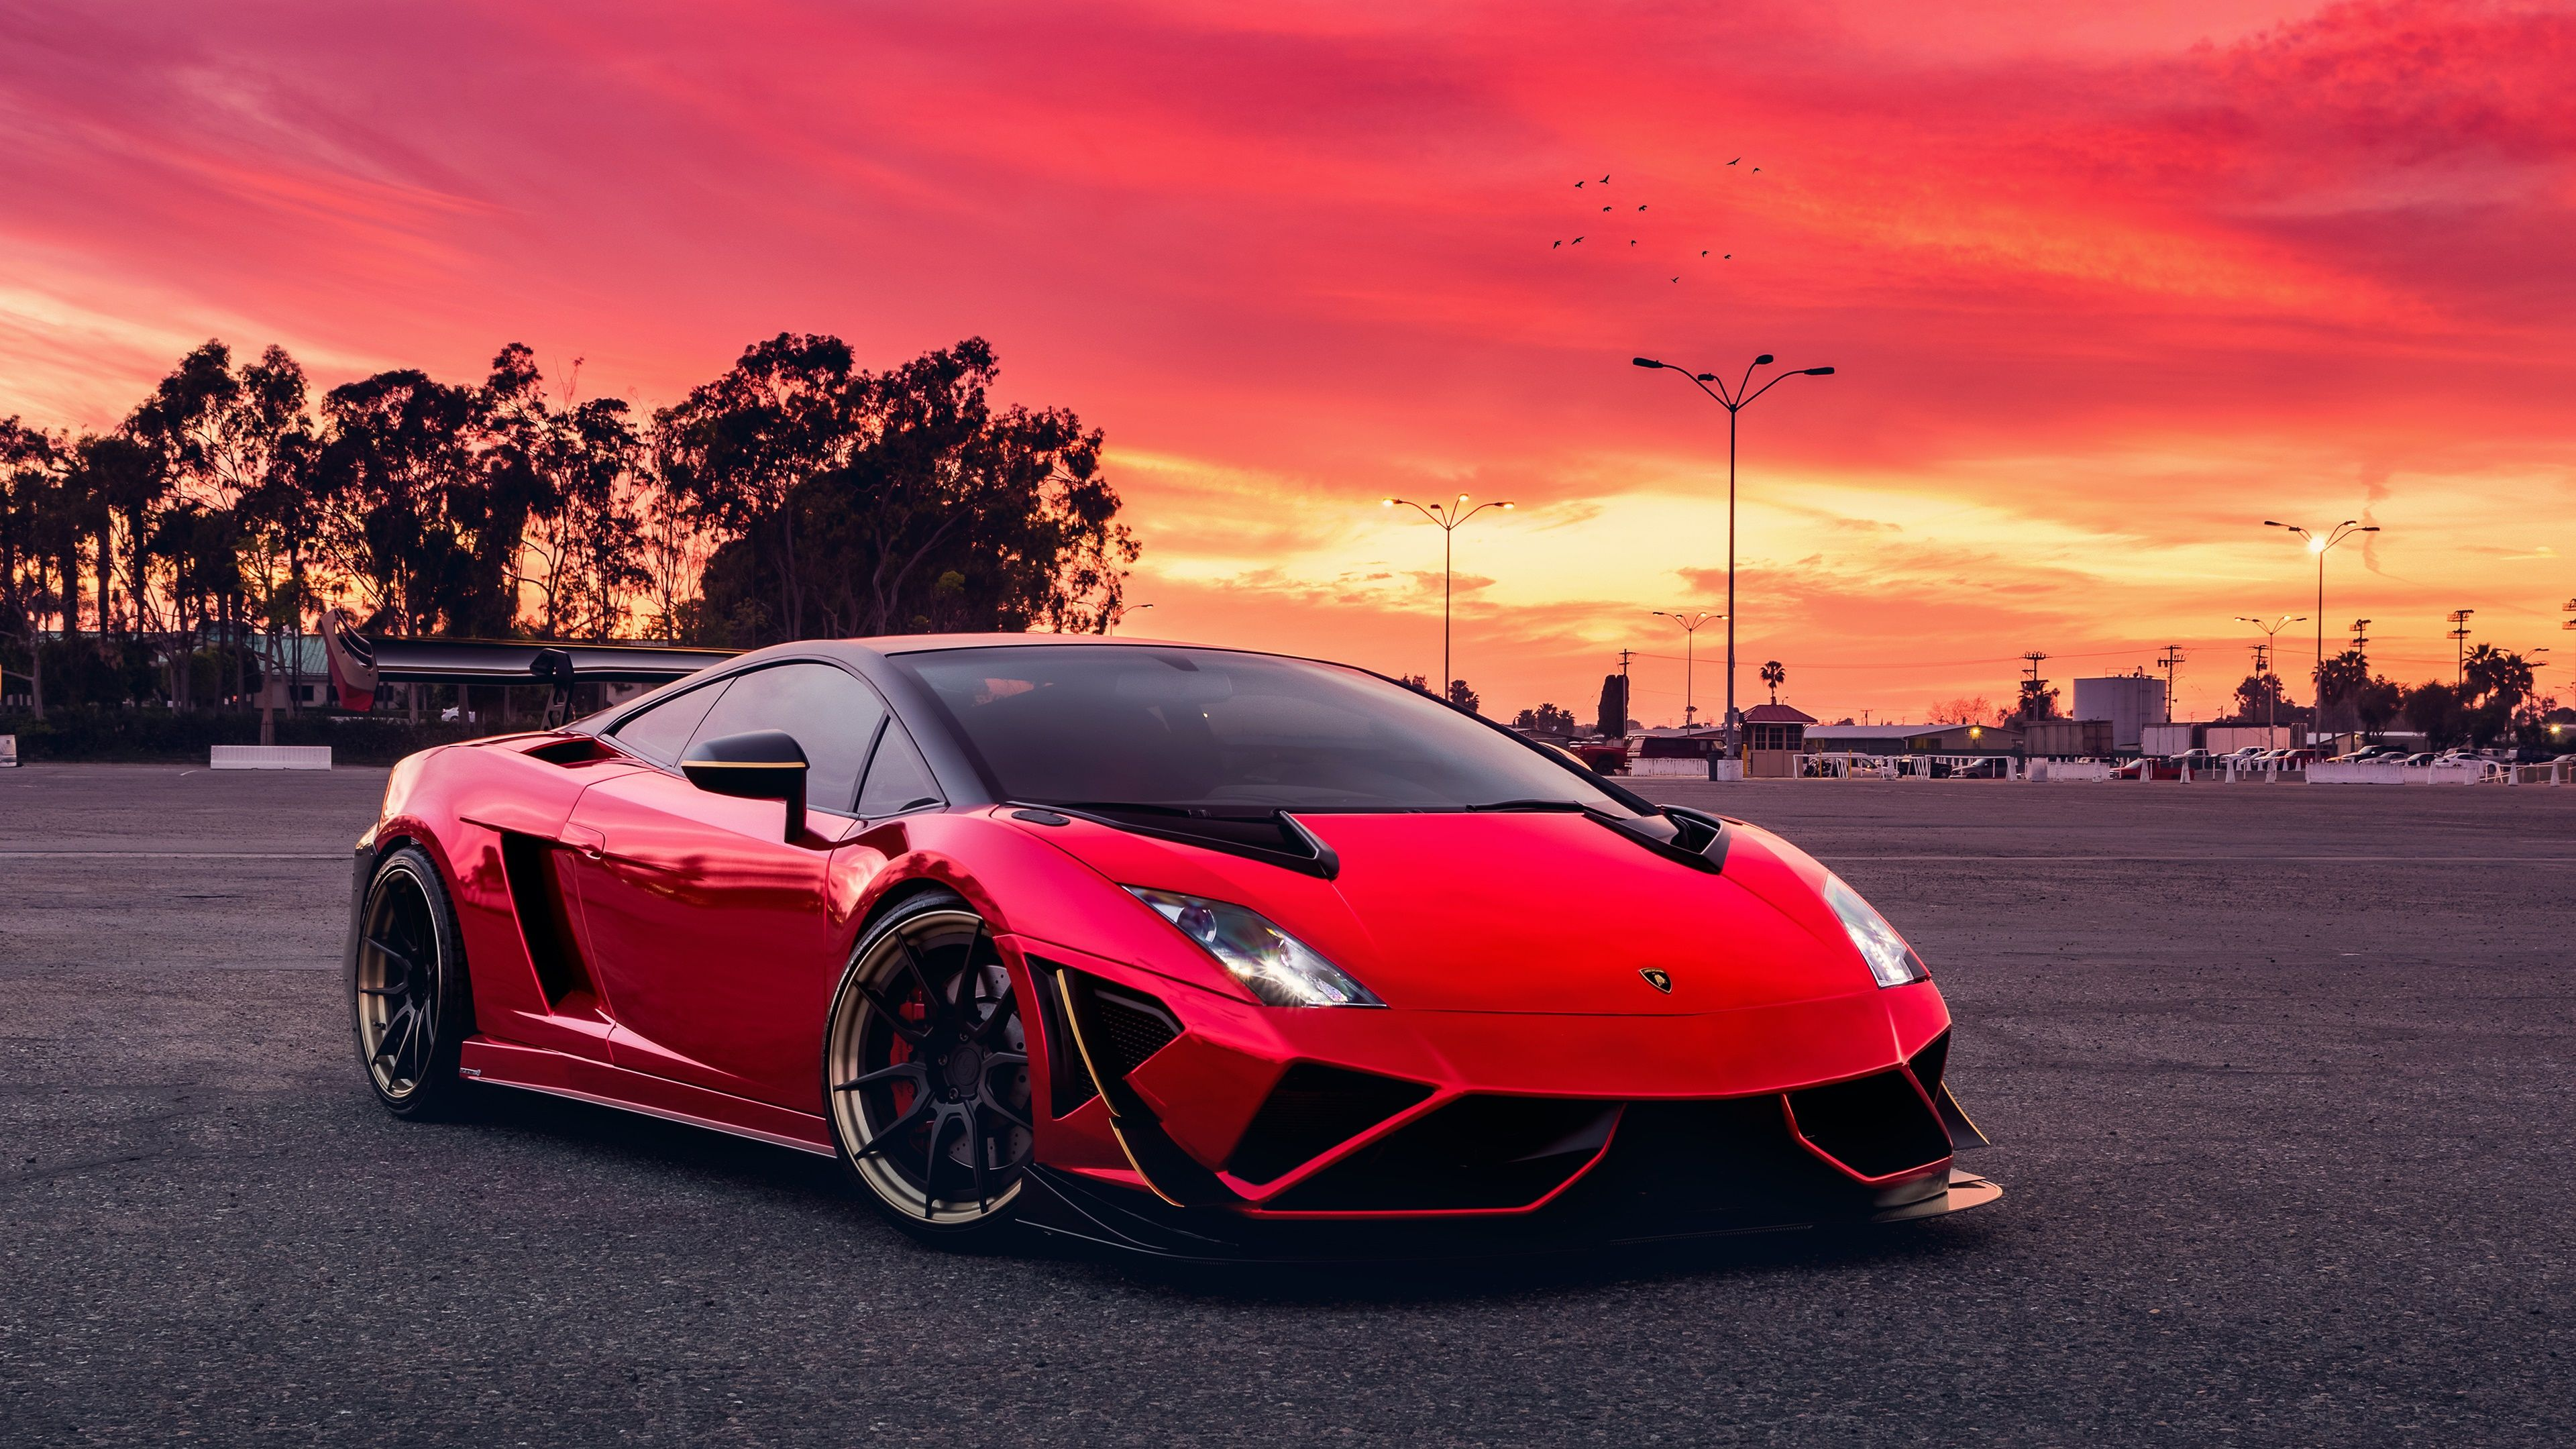 Wallpaper 4k Red Lamborghini Gallardo 4k Wallpapers Cars